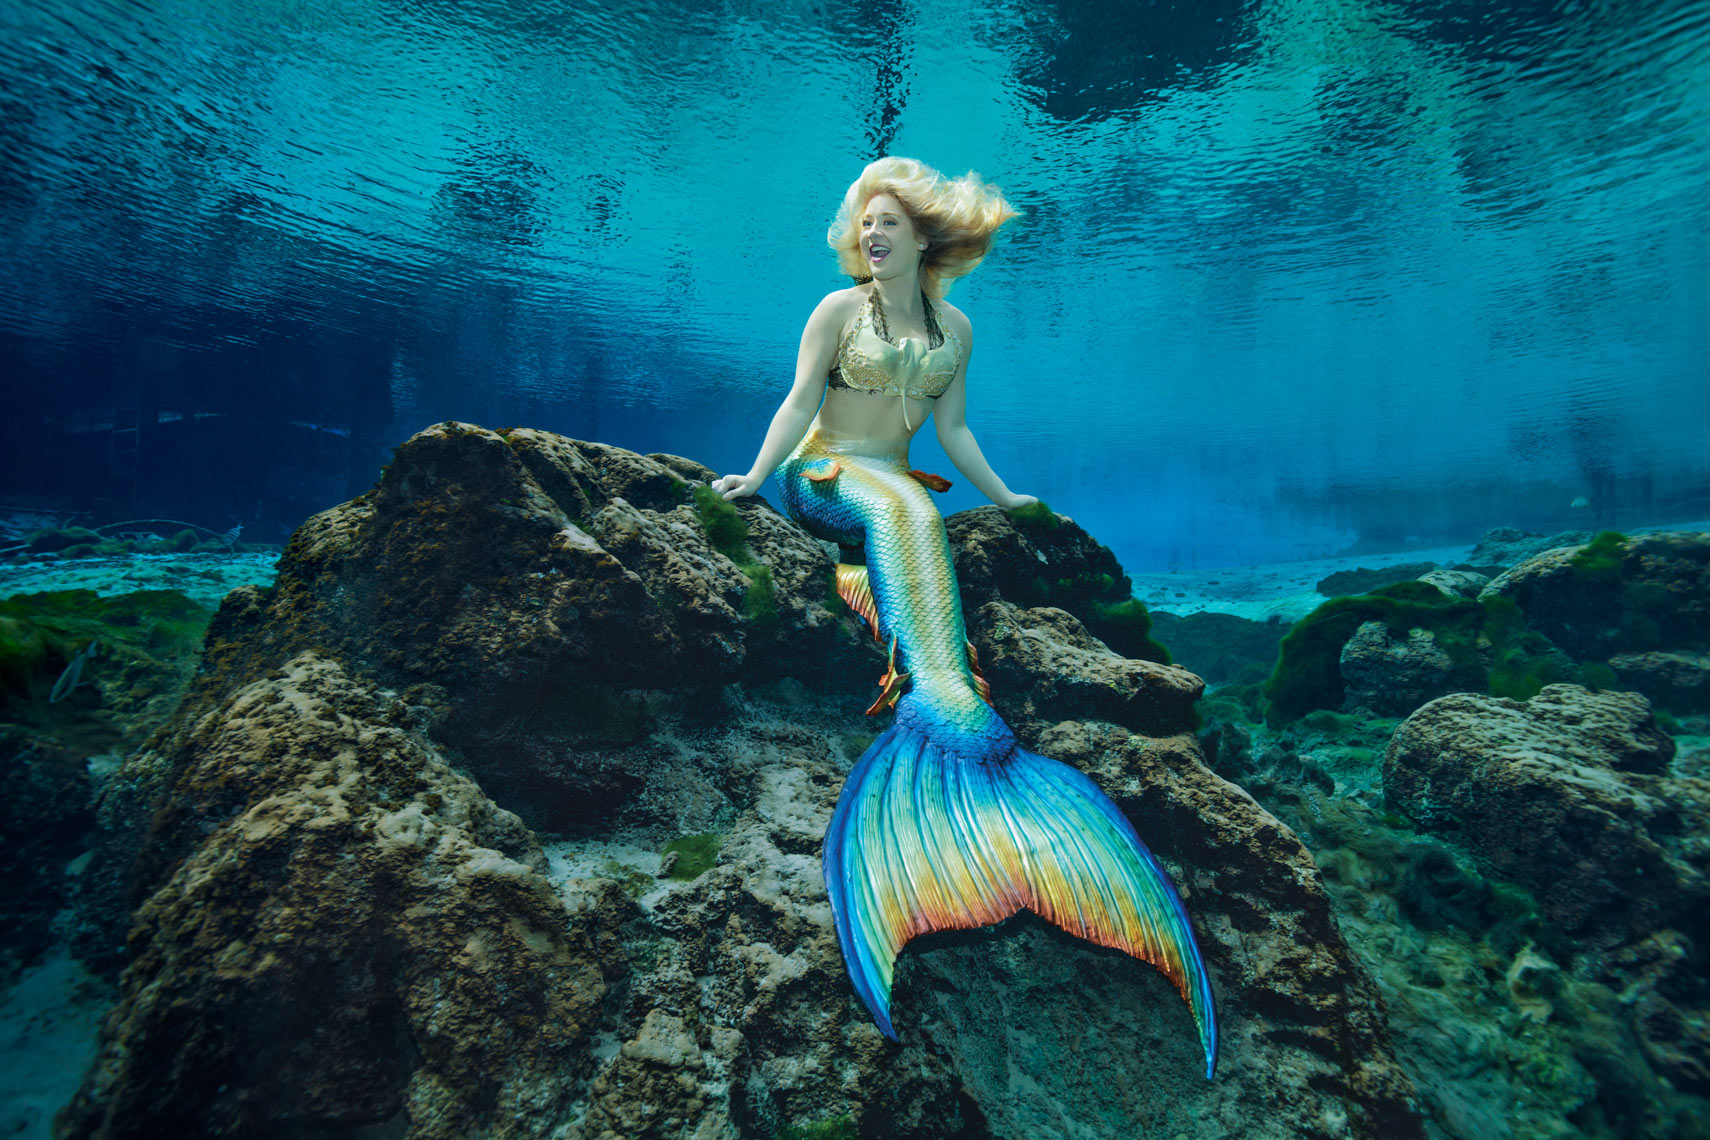 Mermaid-Amanda